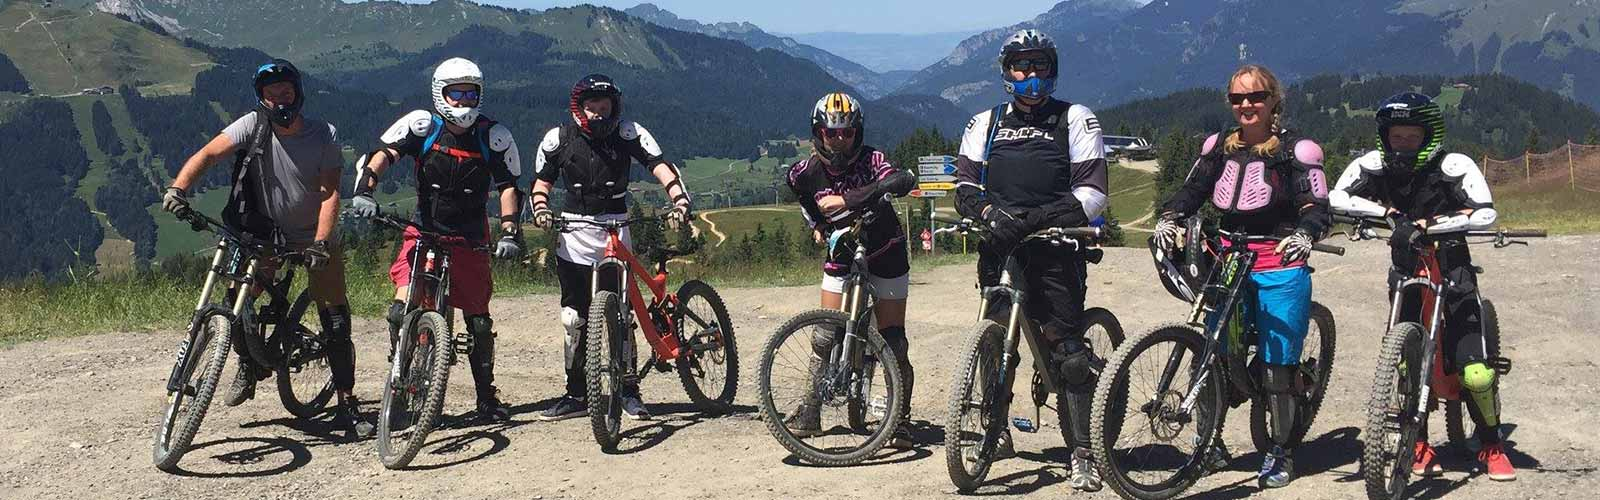 Mountain biking in the Morzine mountains.